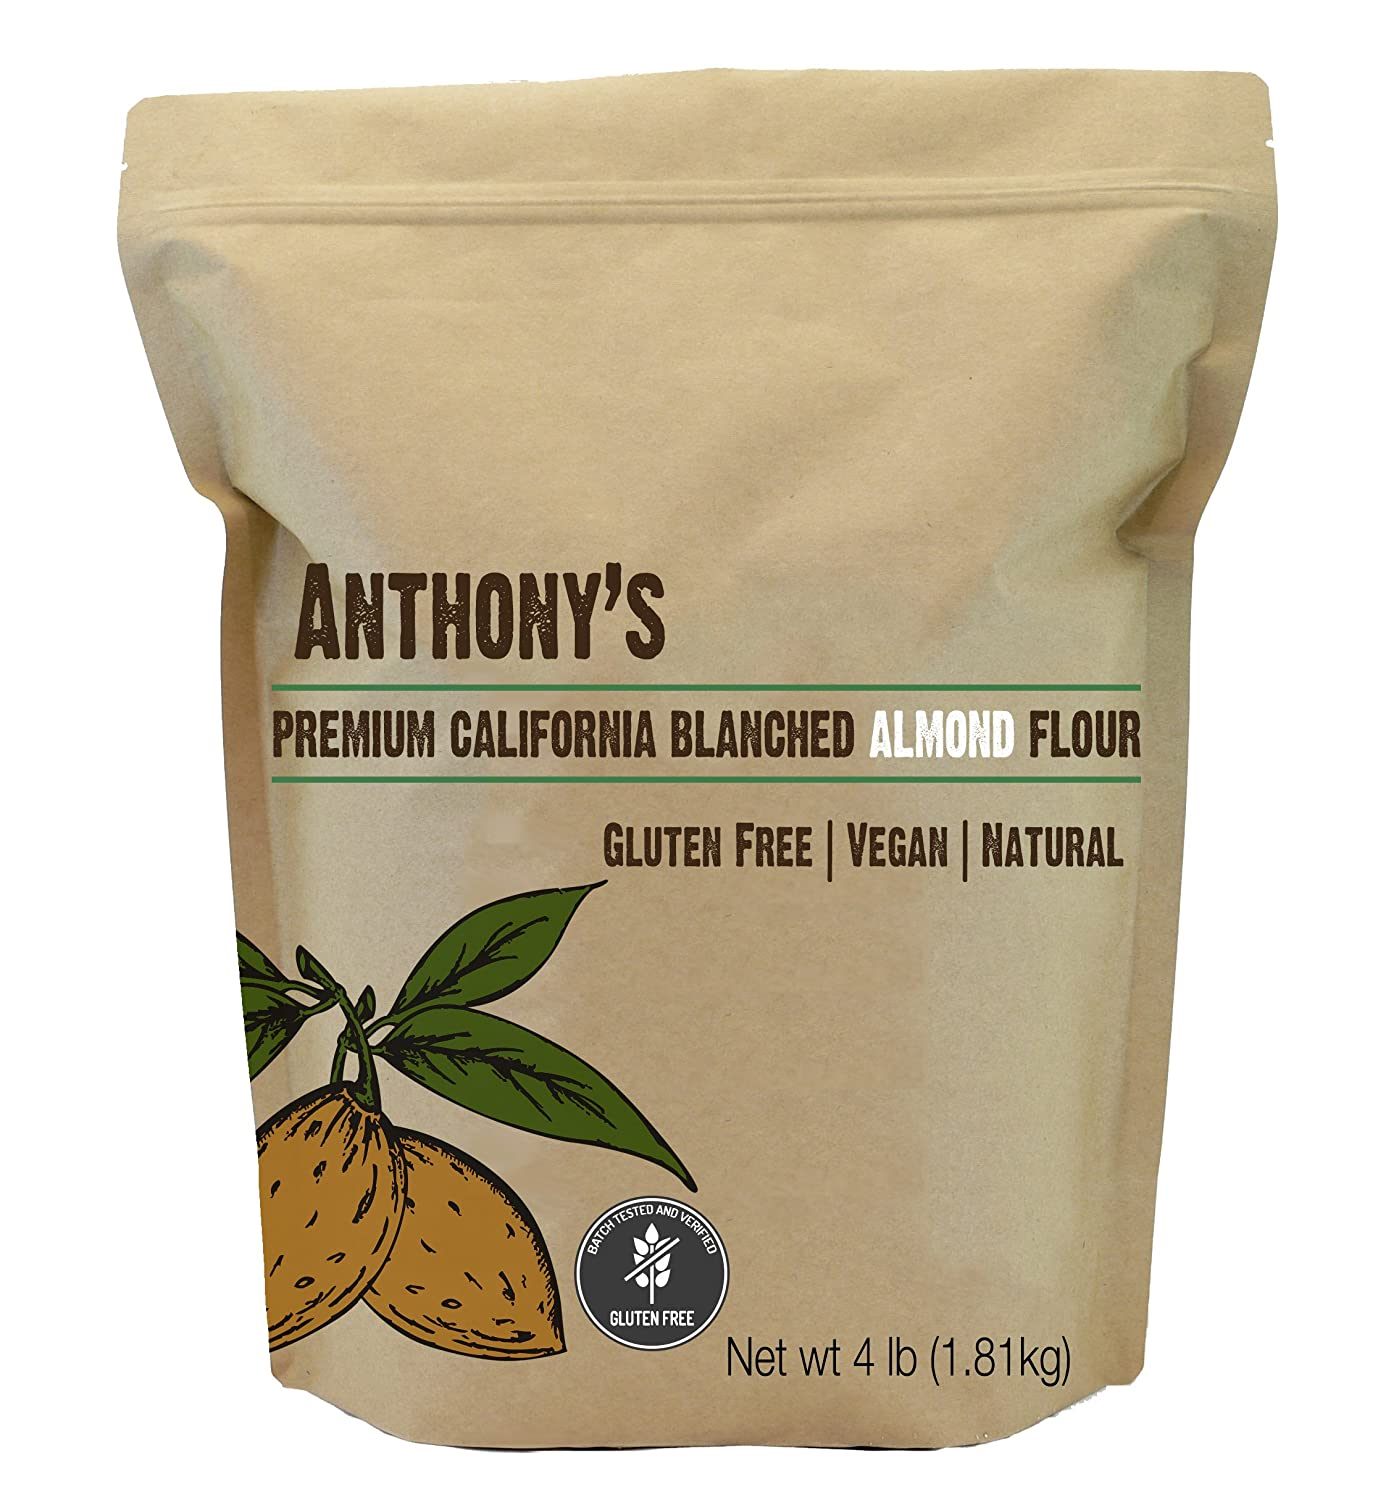 almond flour blanched anthonys 4lb bag batch tested gluten free